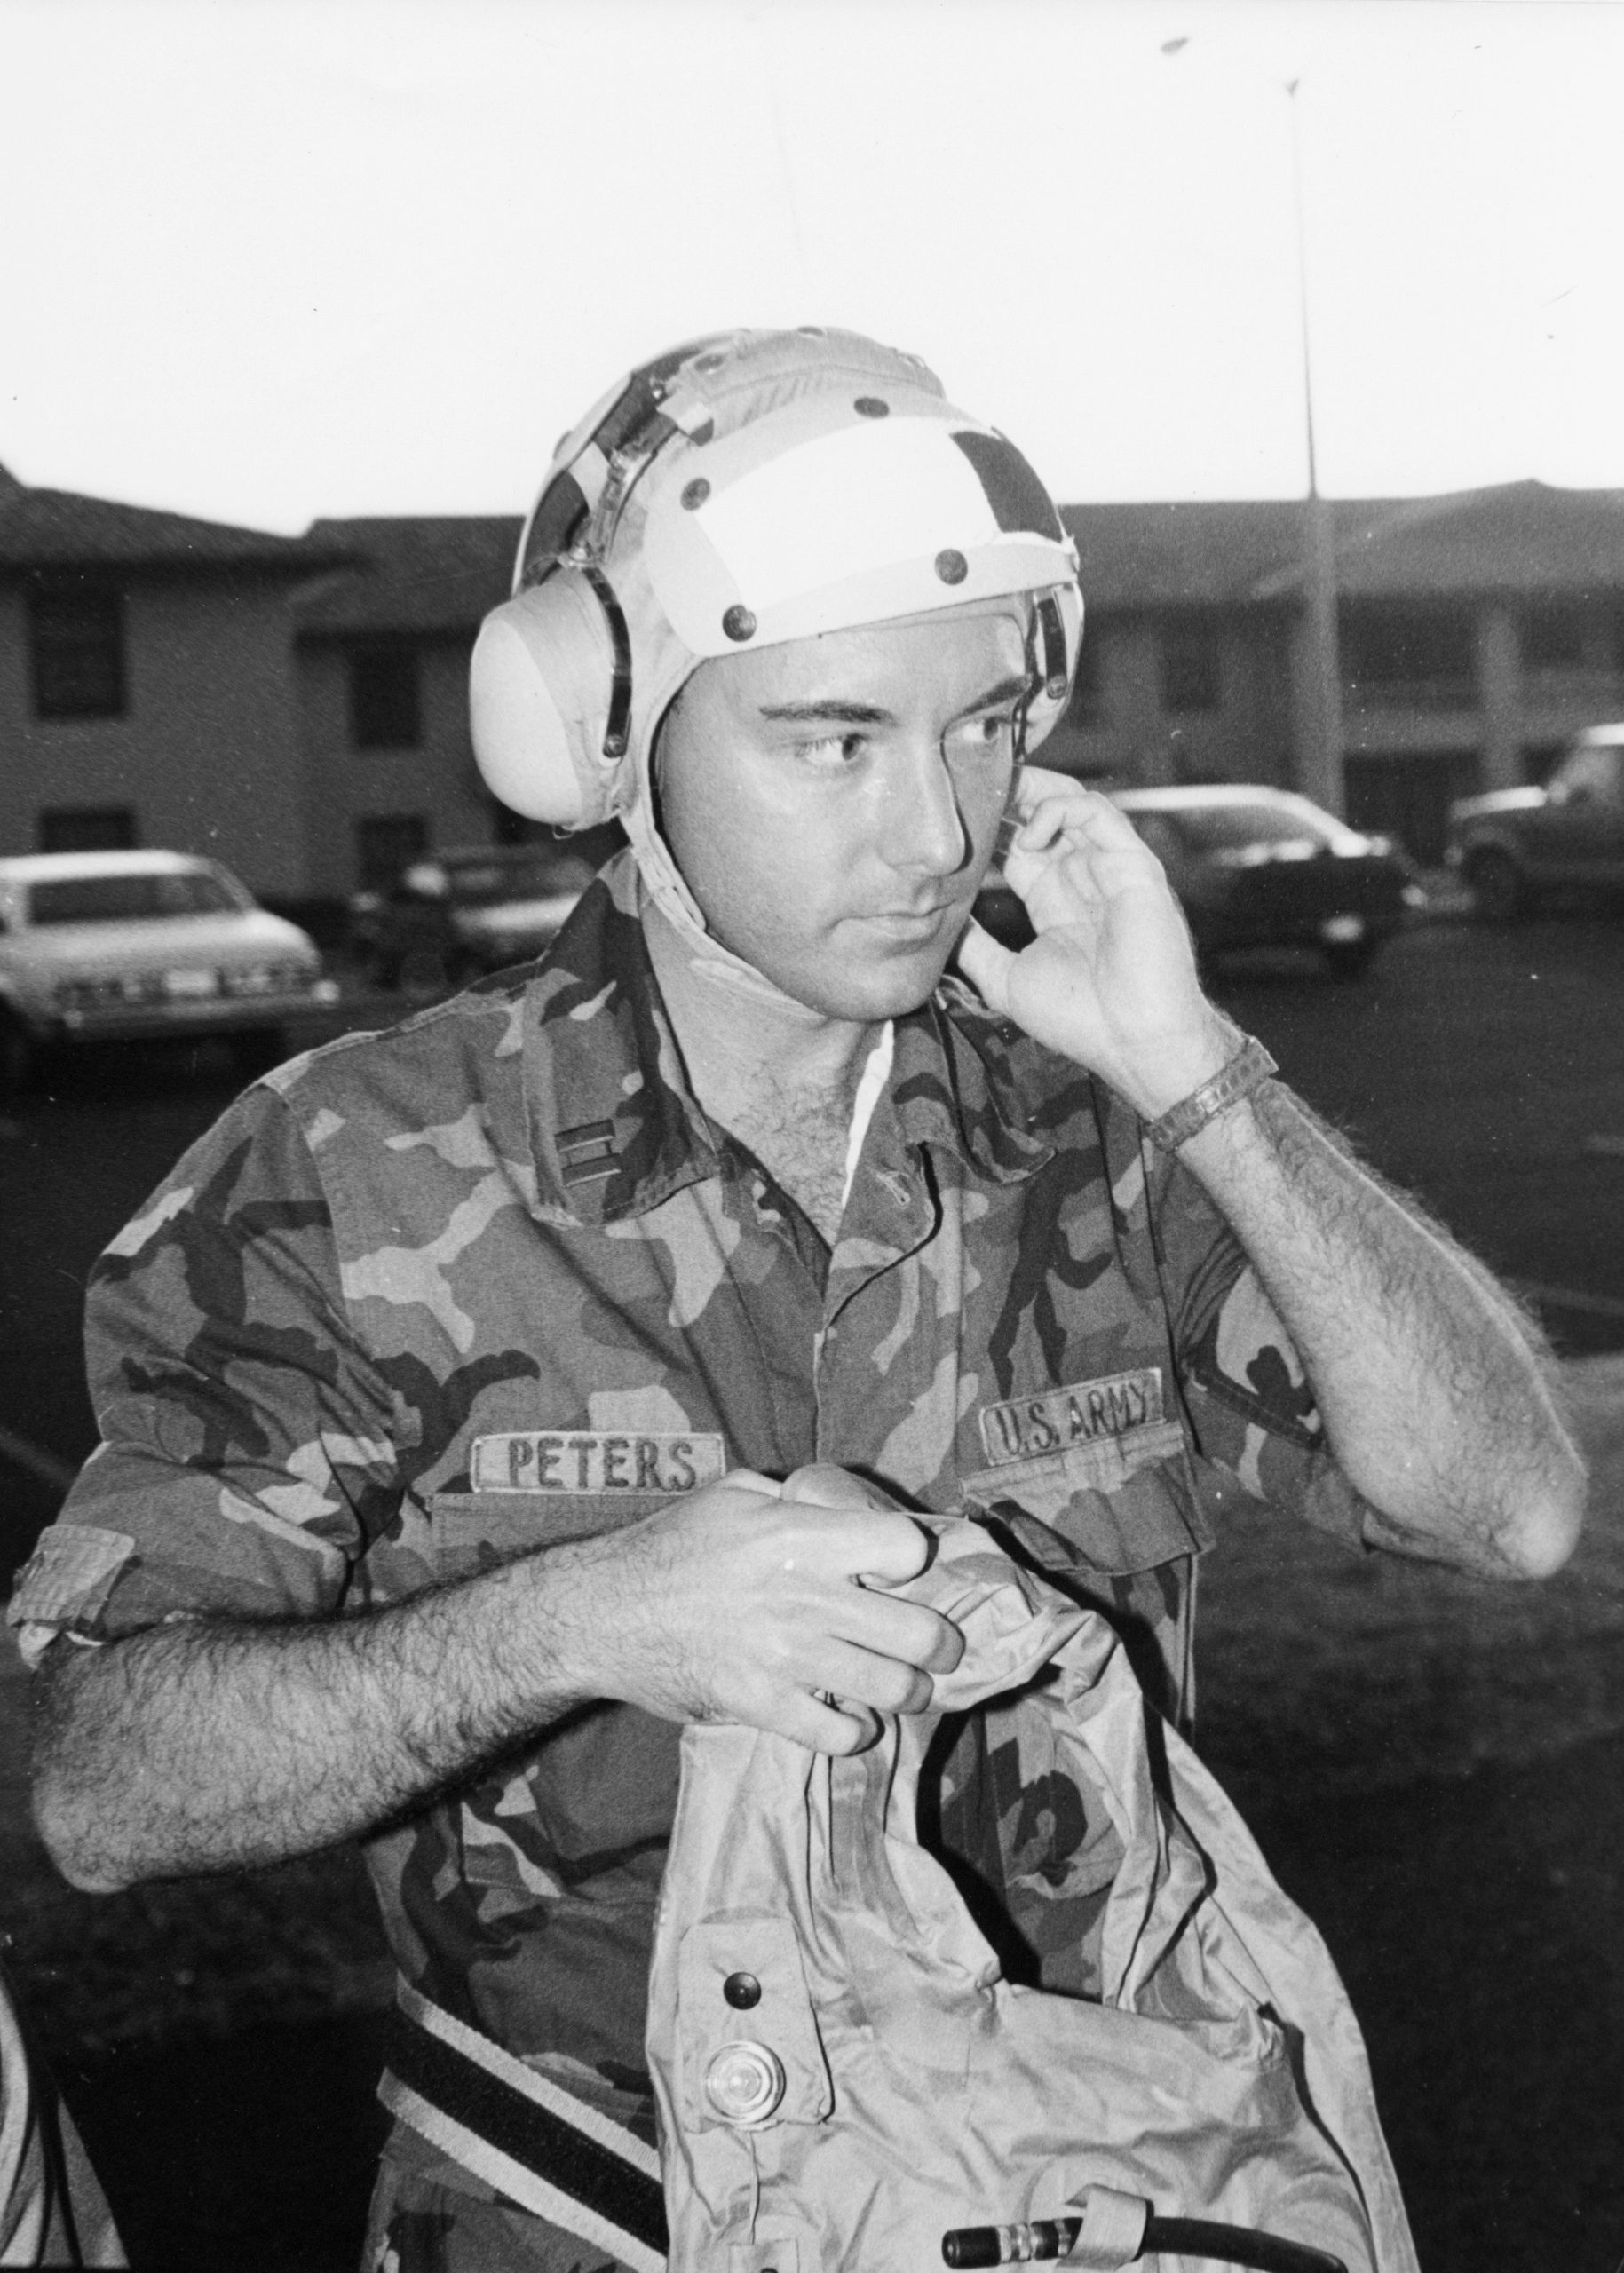 About to board a helicopter to retrieve a fellow surgical resident on Kauai, 1993.